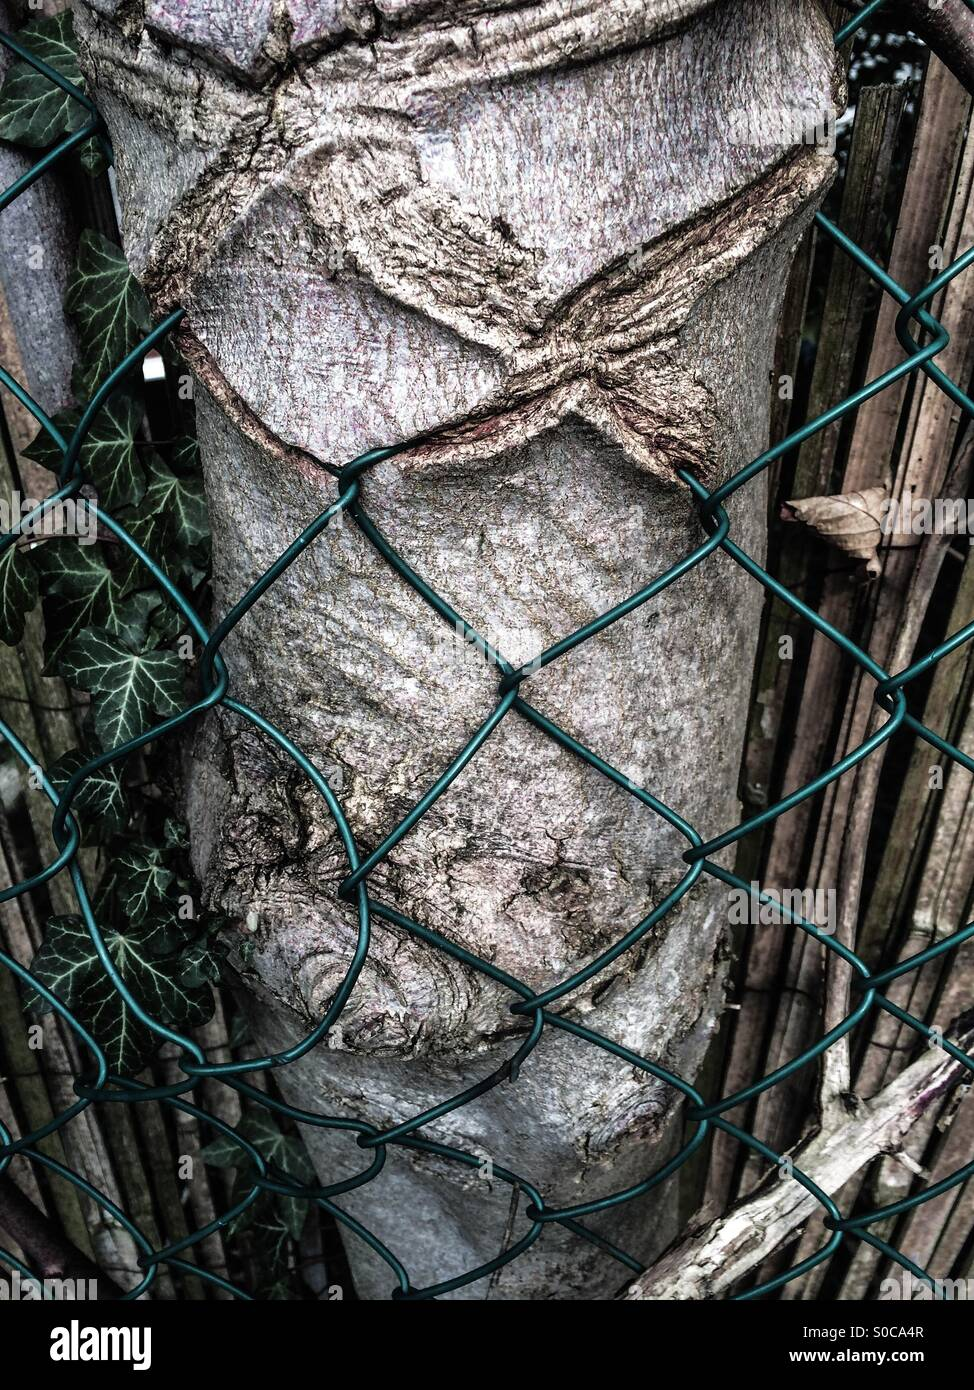 Tree growing into wire fence. - Stock Image